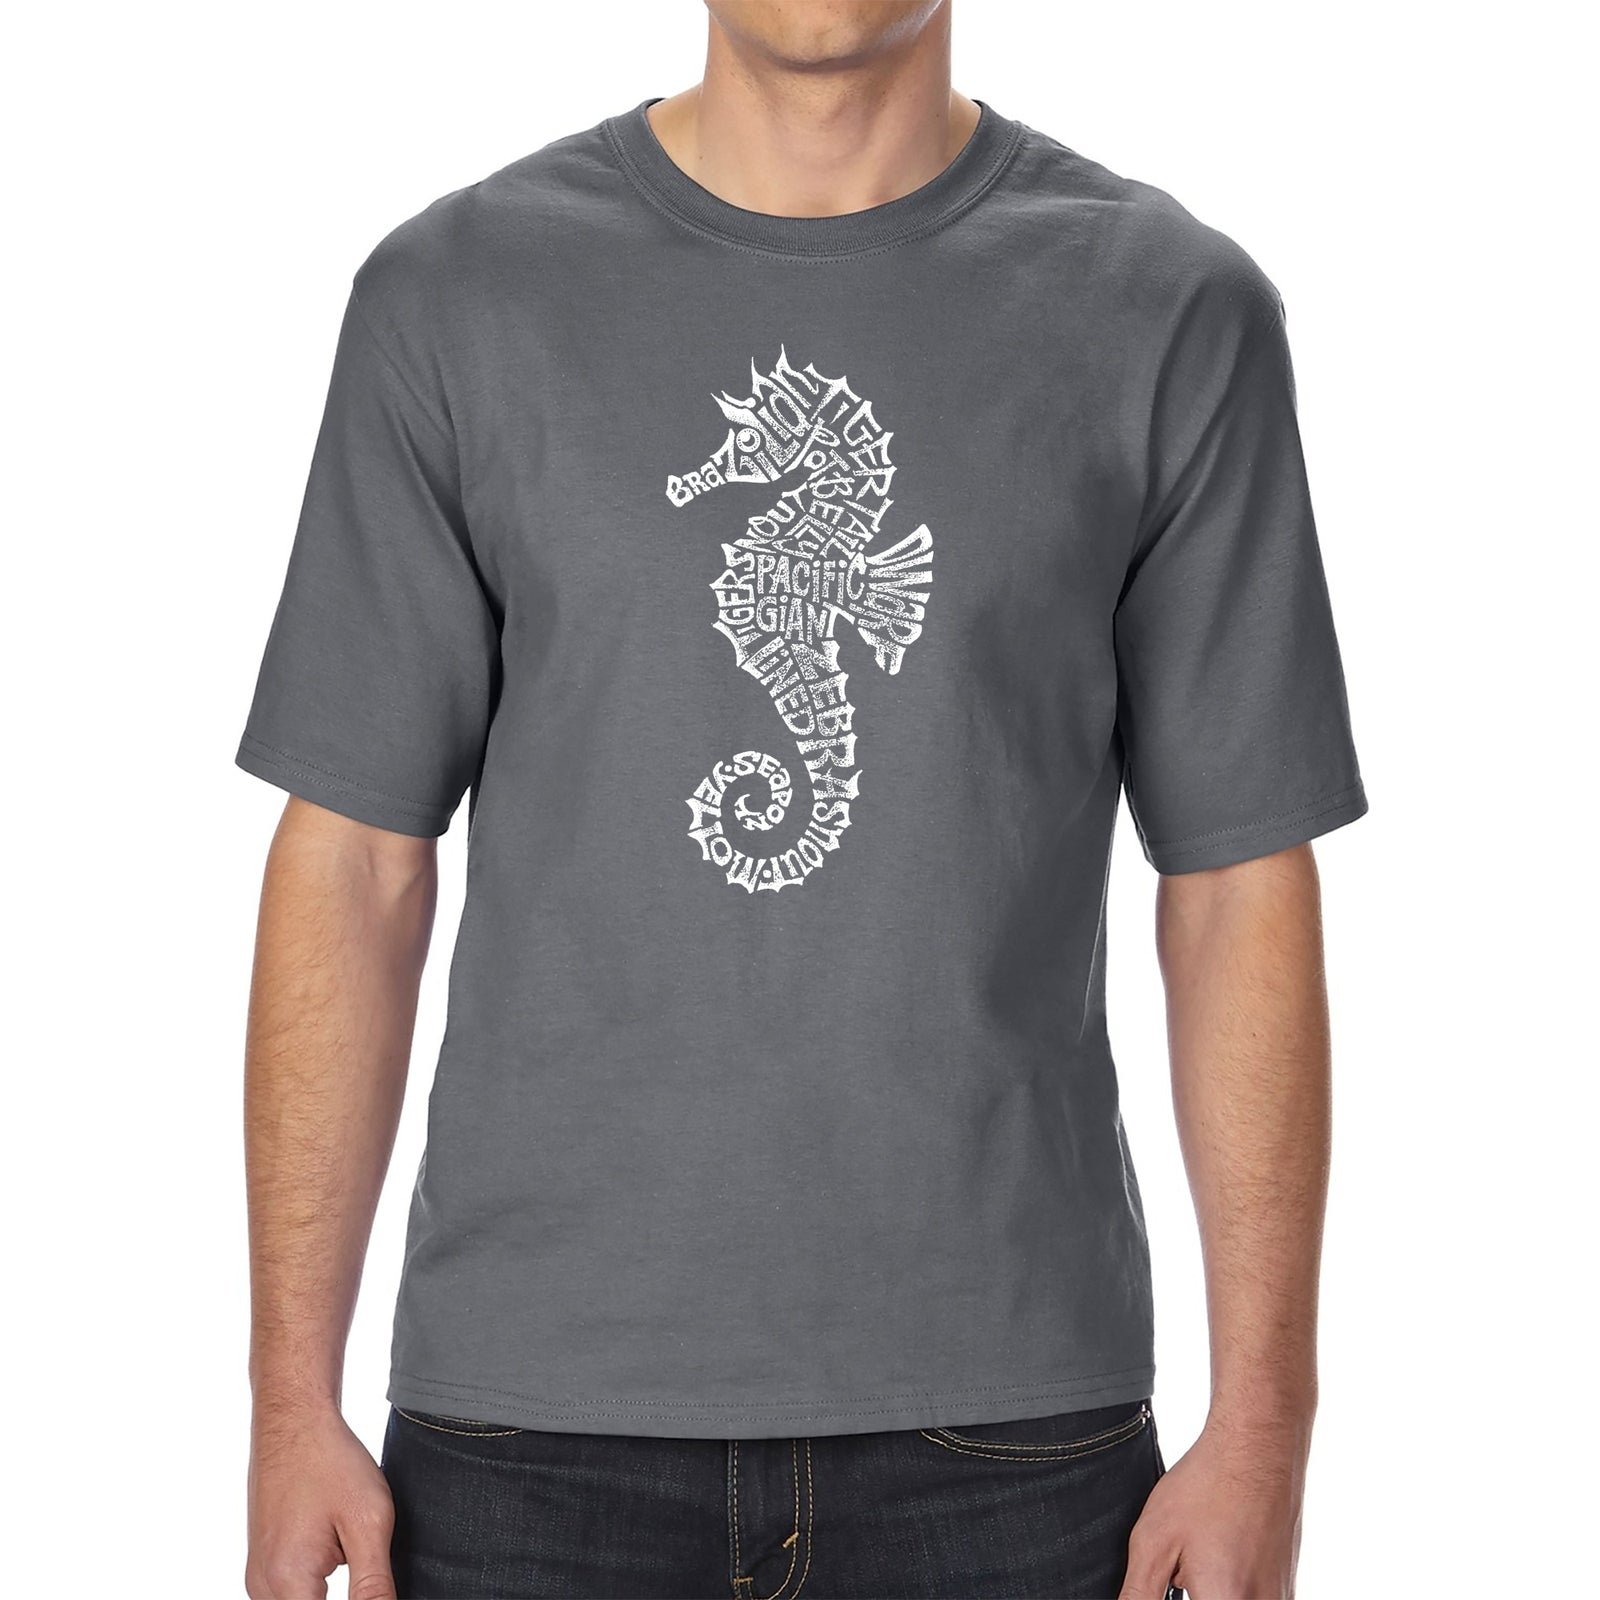 Men's Tall and Long Word Art T-shirt - Types of Seahorse